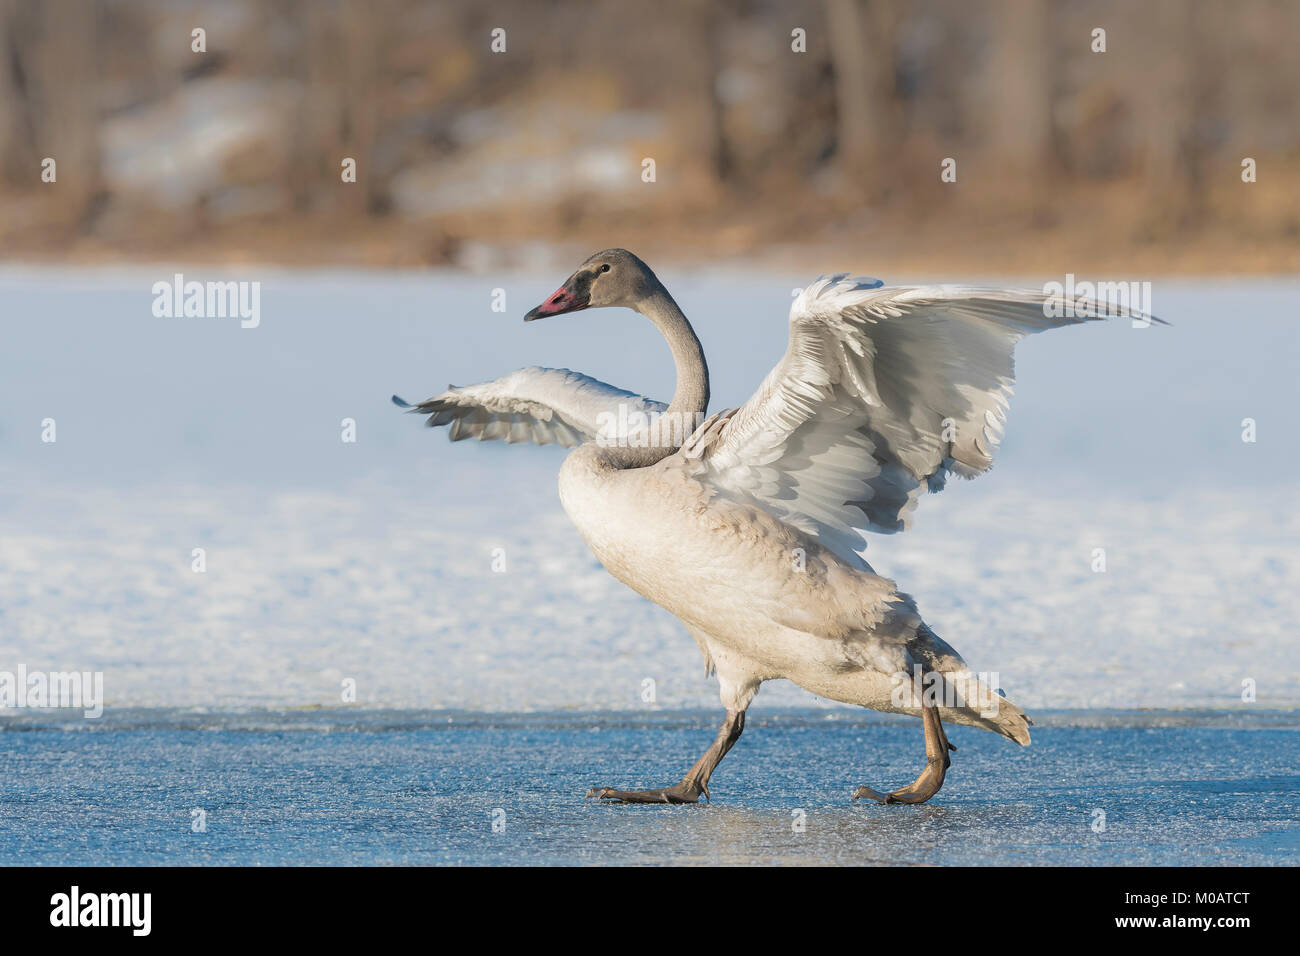 Immature trumpeter swan (Cygnus buccinator), St. Croix River near Hudson, Wisconsin. Late December, by Dominique - Stock Image